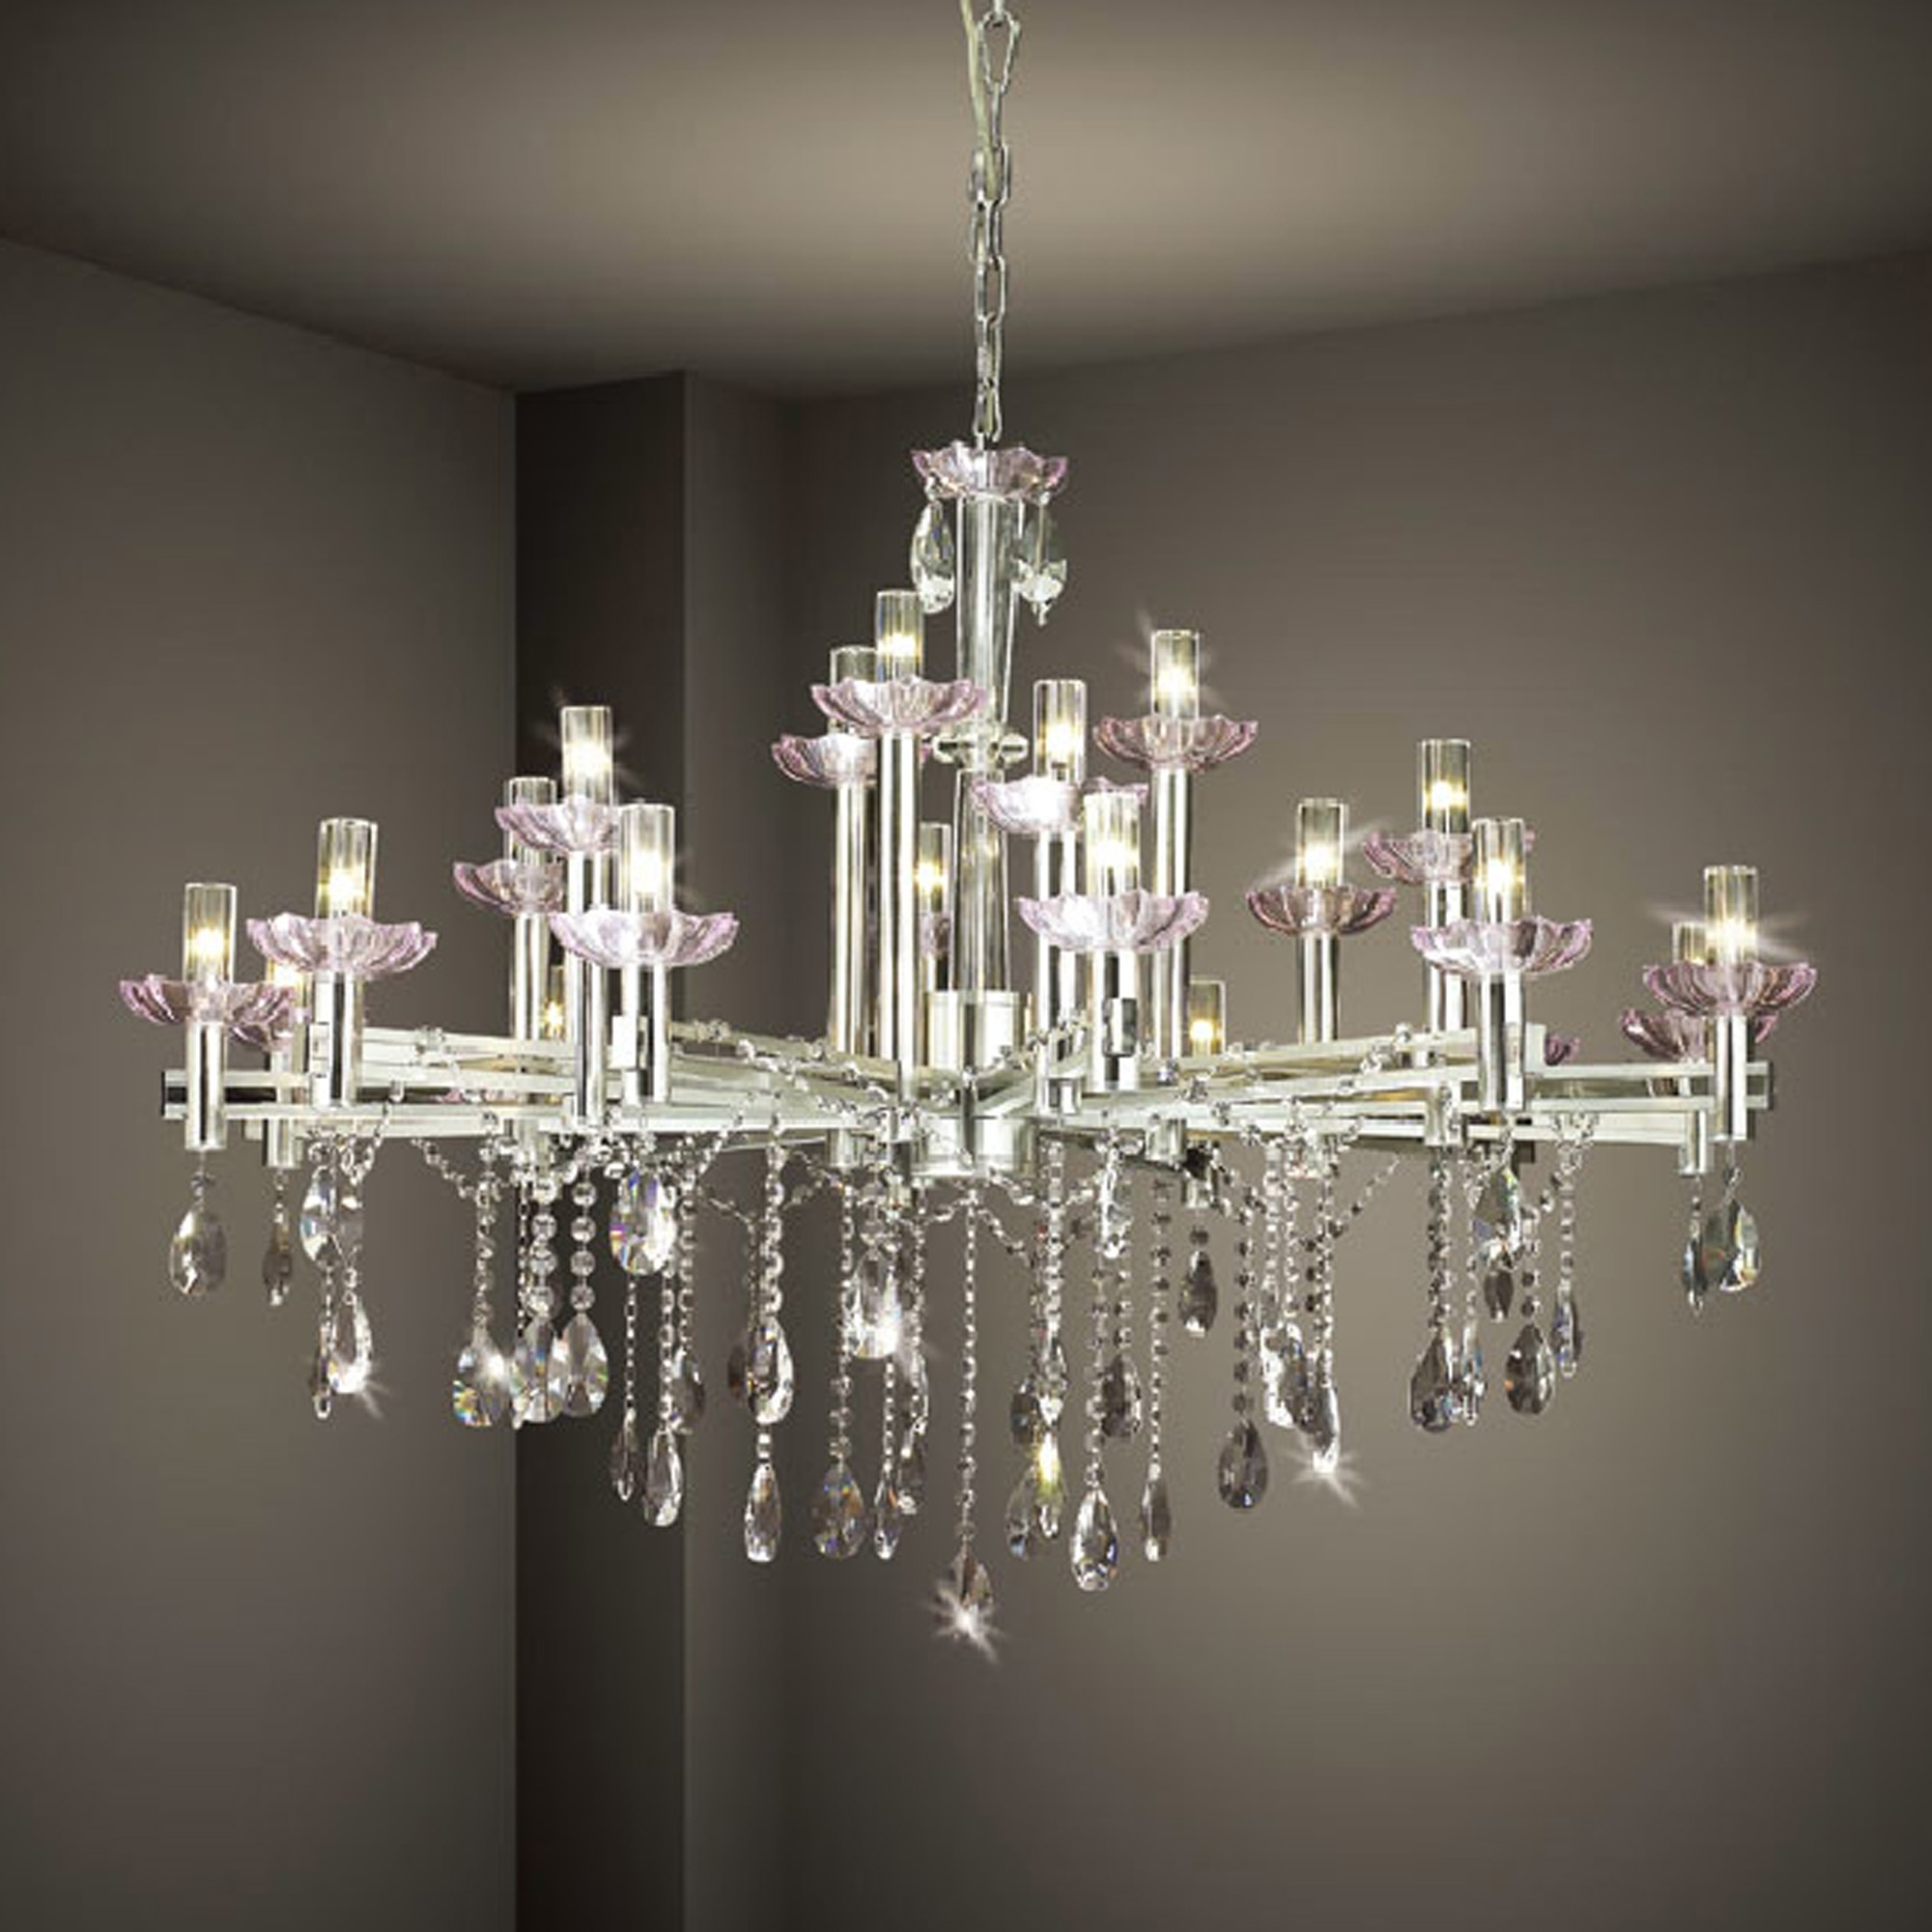 Popular Hanging Modern Crystal Chandelier Lighting With Stainless Steel Throughout Black Contemporary Chandelier (View 14 of 20)